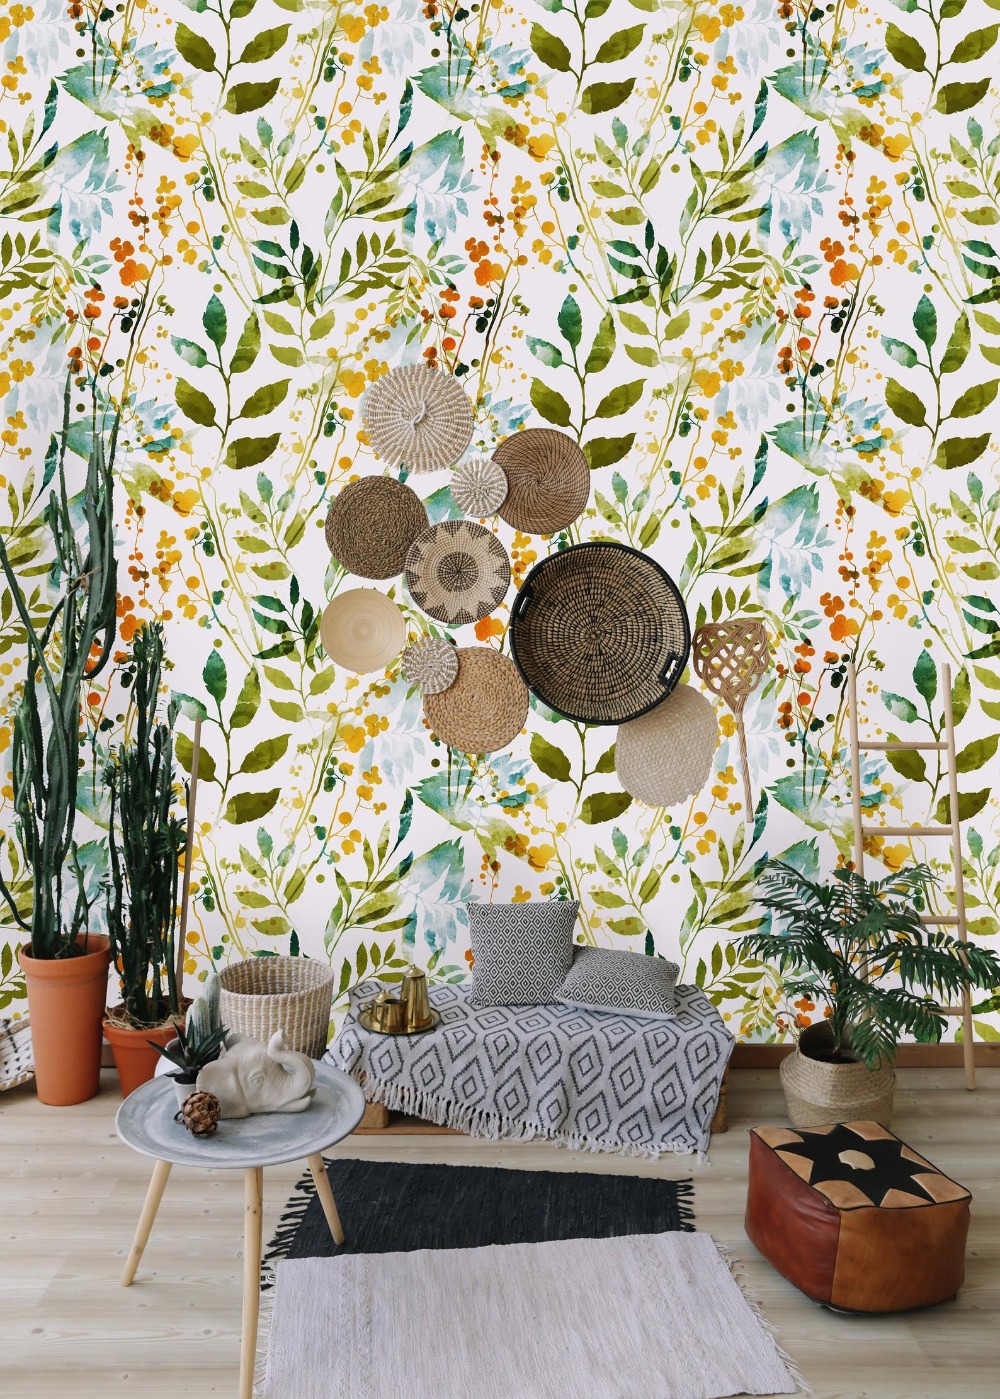 Hand Drawn Boho Spring Leaves Removable Wallpaper Peel And Etsy Wall Wallpaper How To Draw Hands Boho Wallpaper